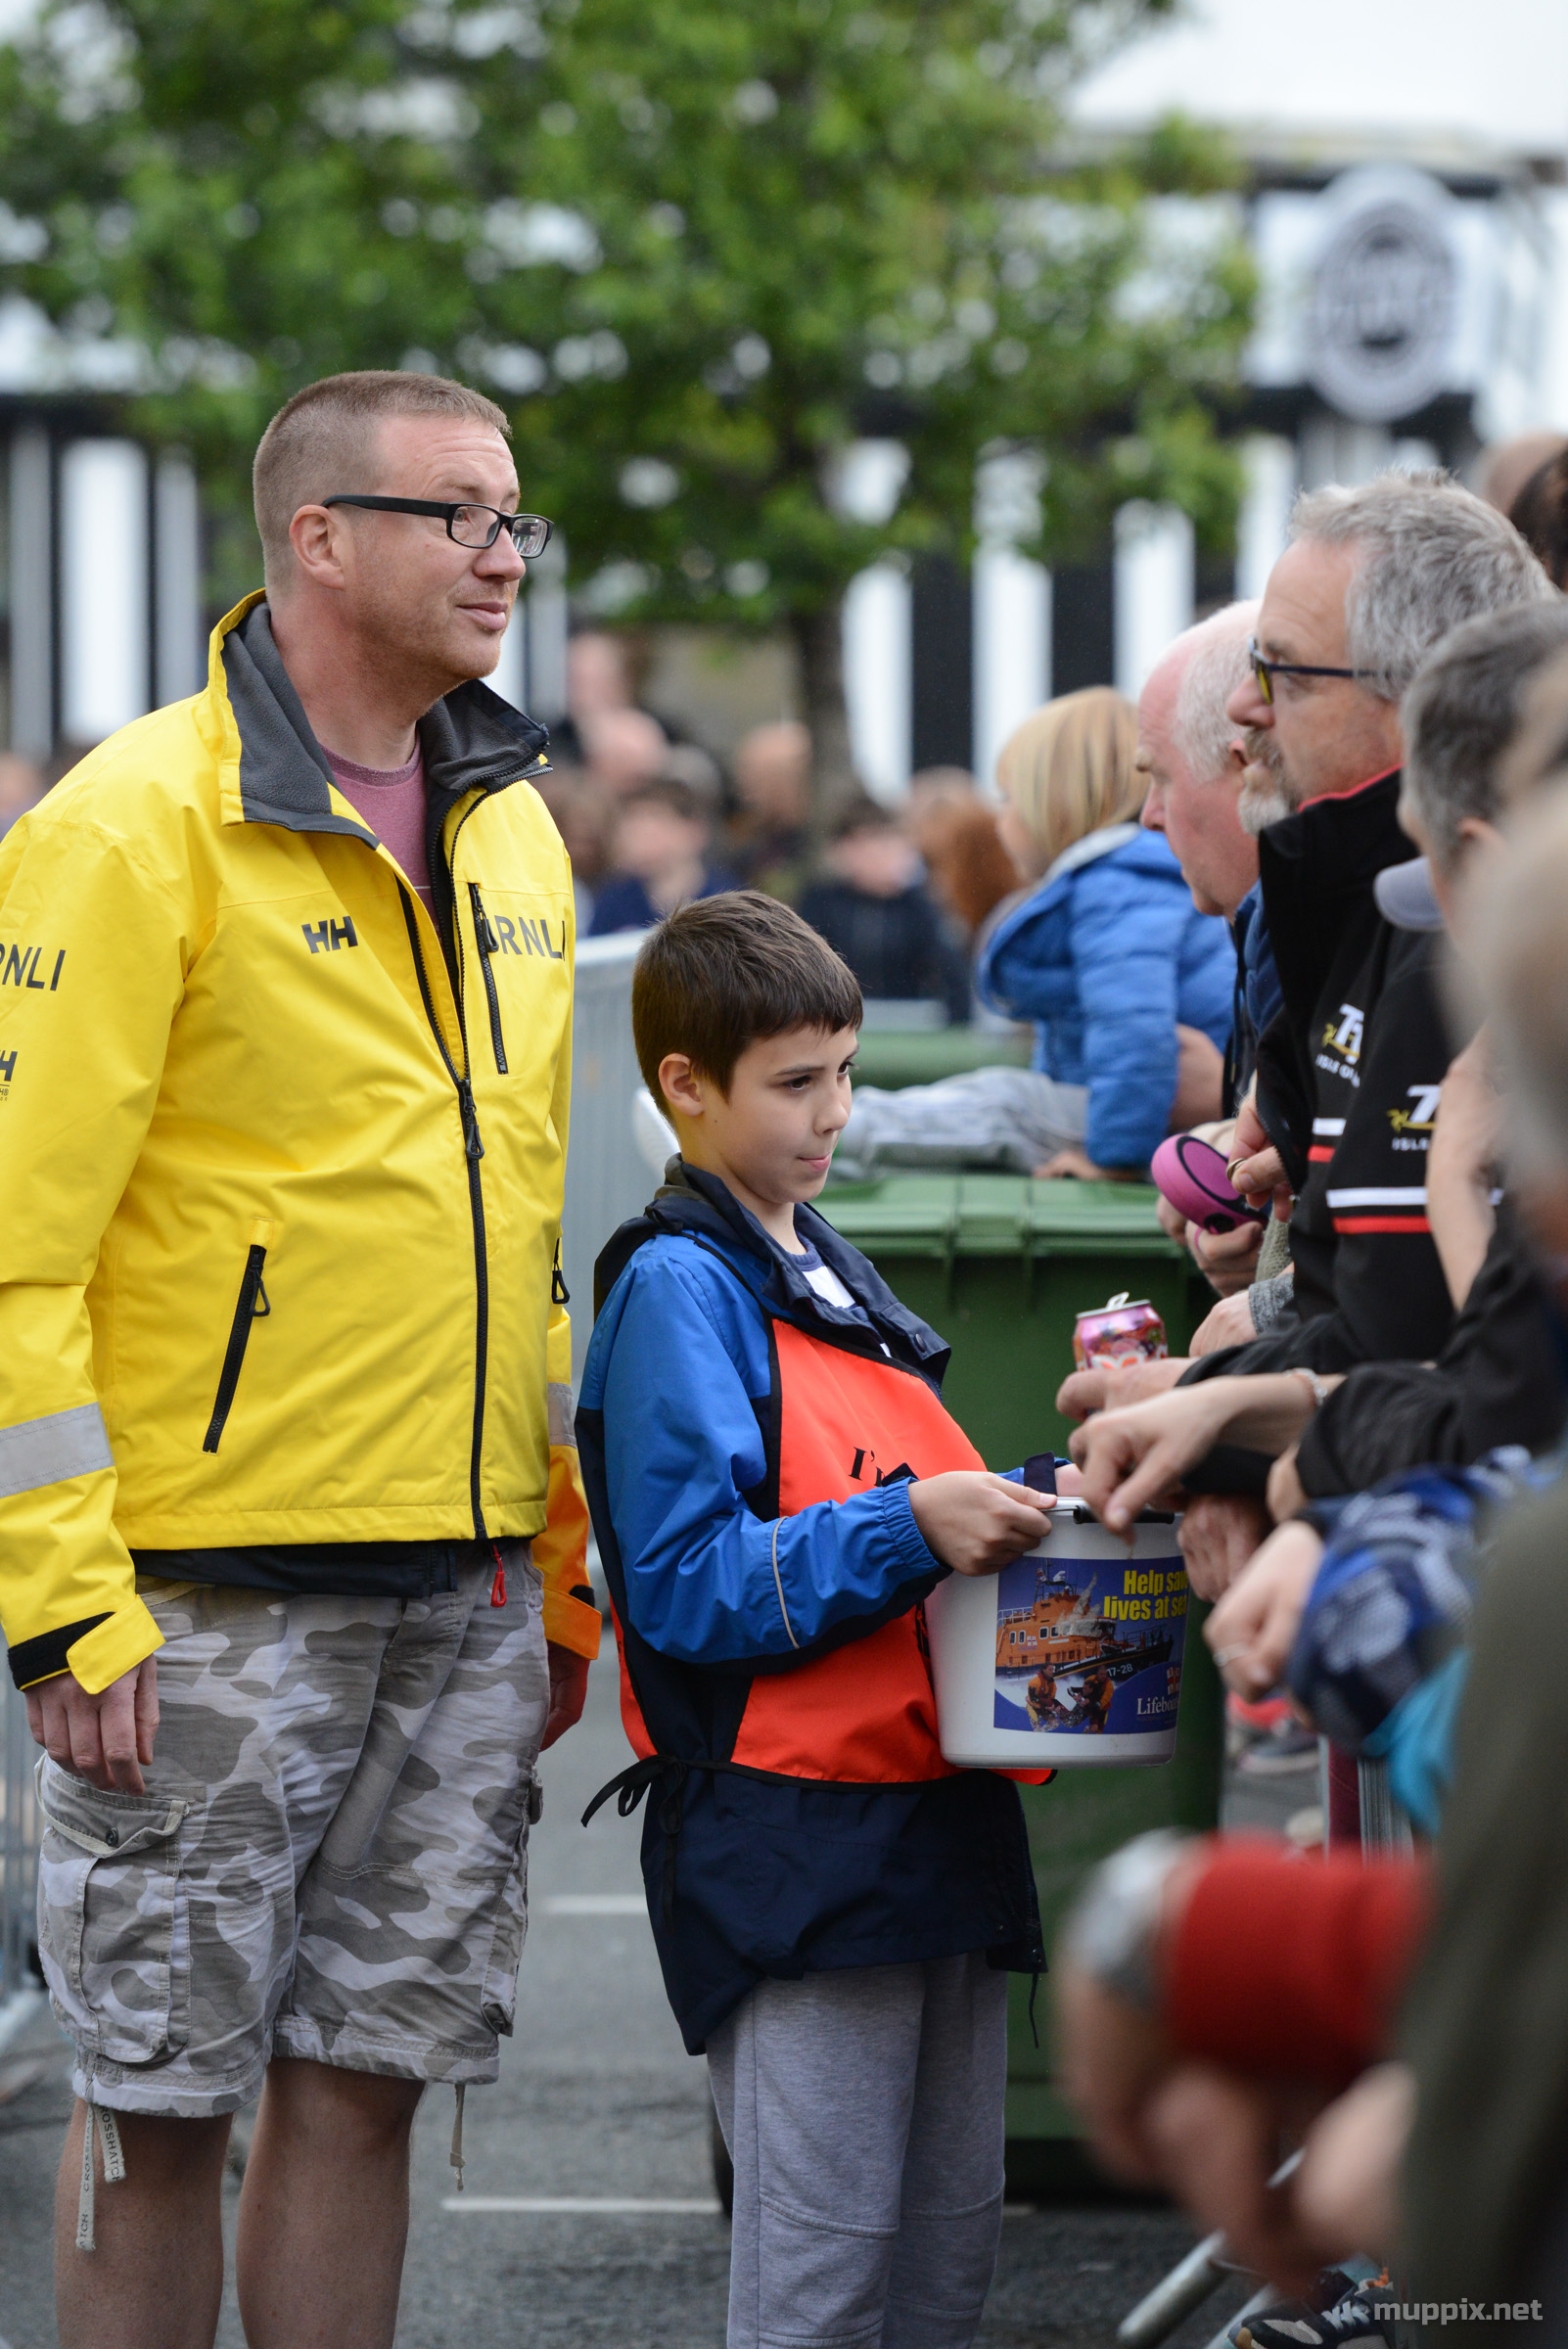 RNLI volunteers collecting for charity